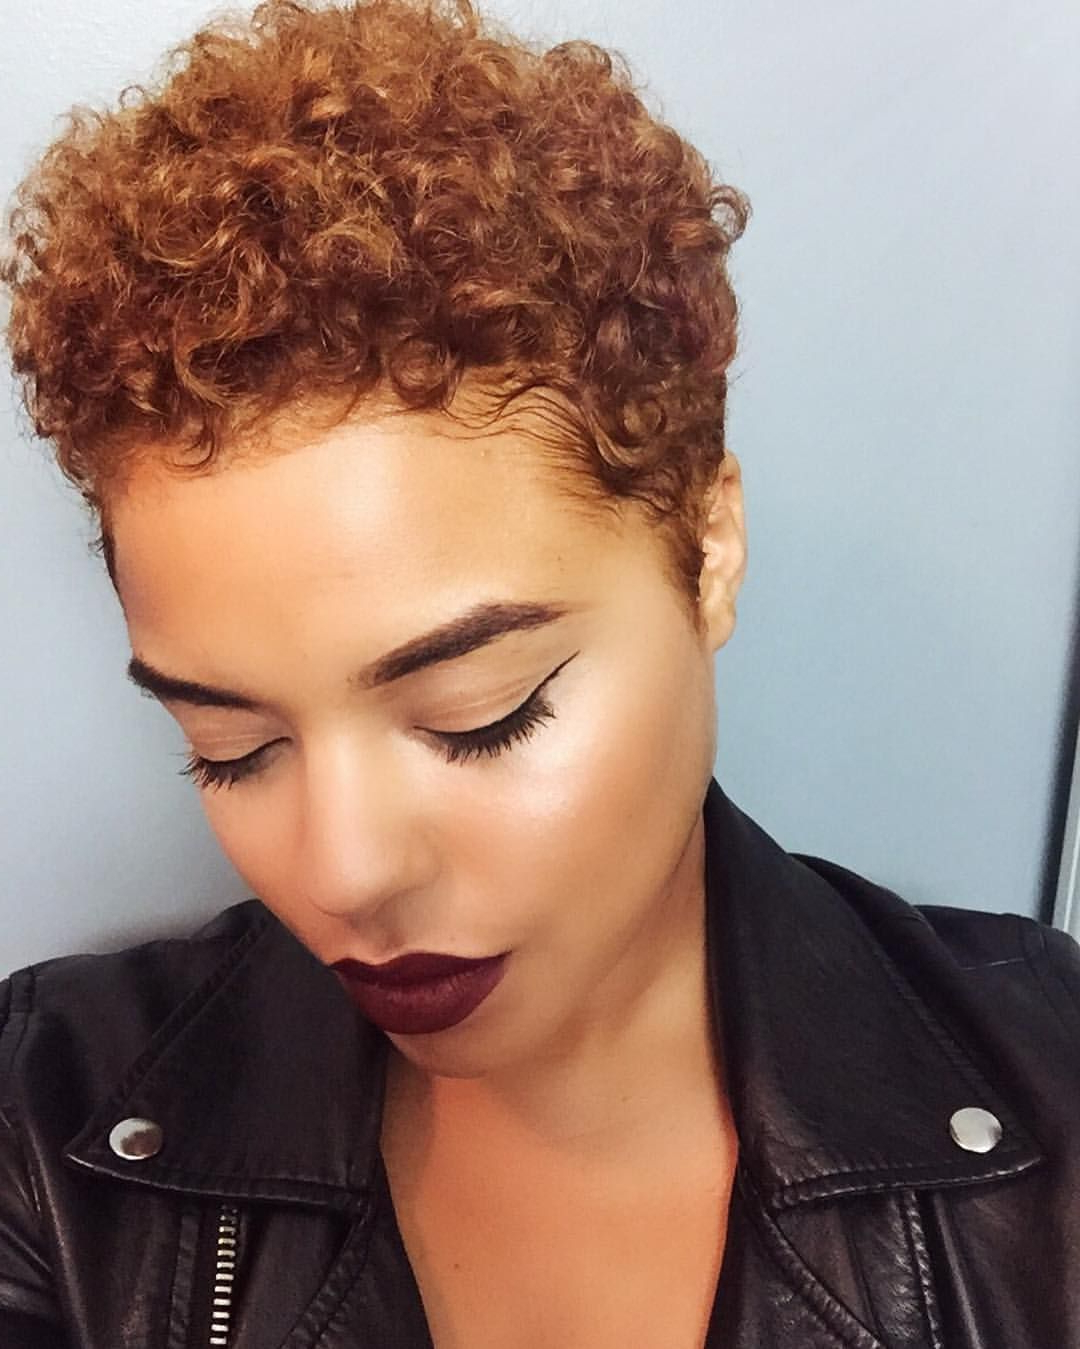 Pin🍍jada🍍 On Black Women Hairstyles | Pinterest | Hair Inside Tapered Brown Pixie Hairstyles With Ginger Curls (View 17 of 20)